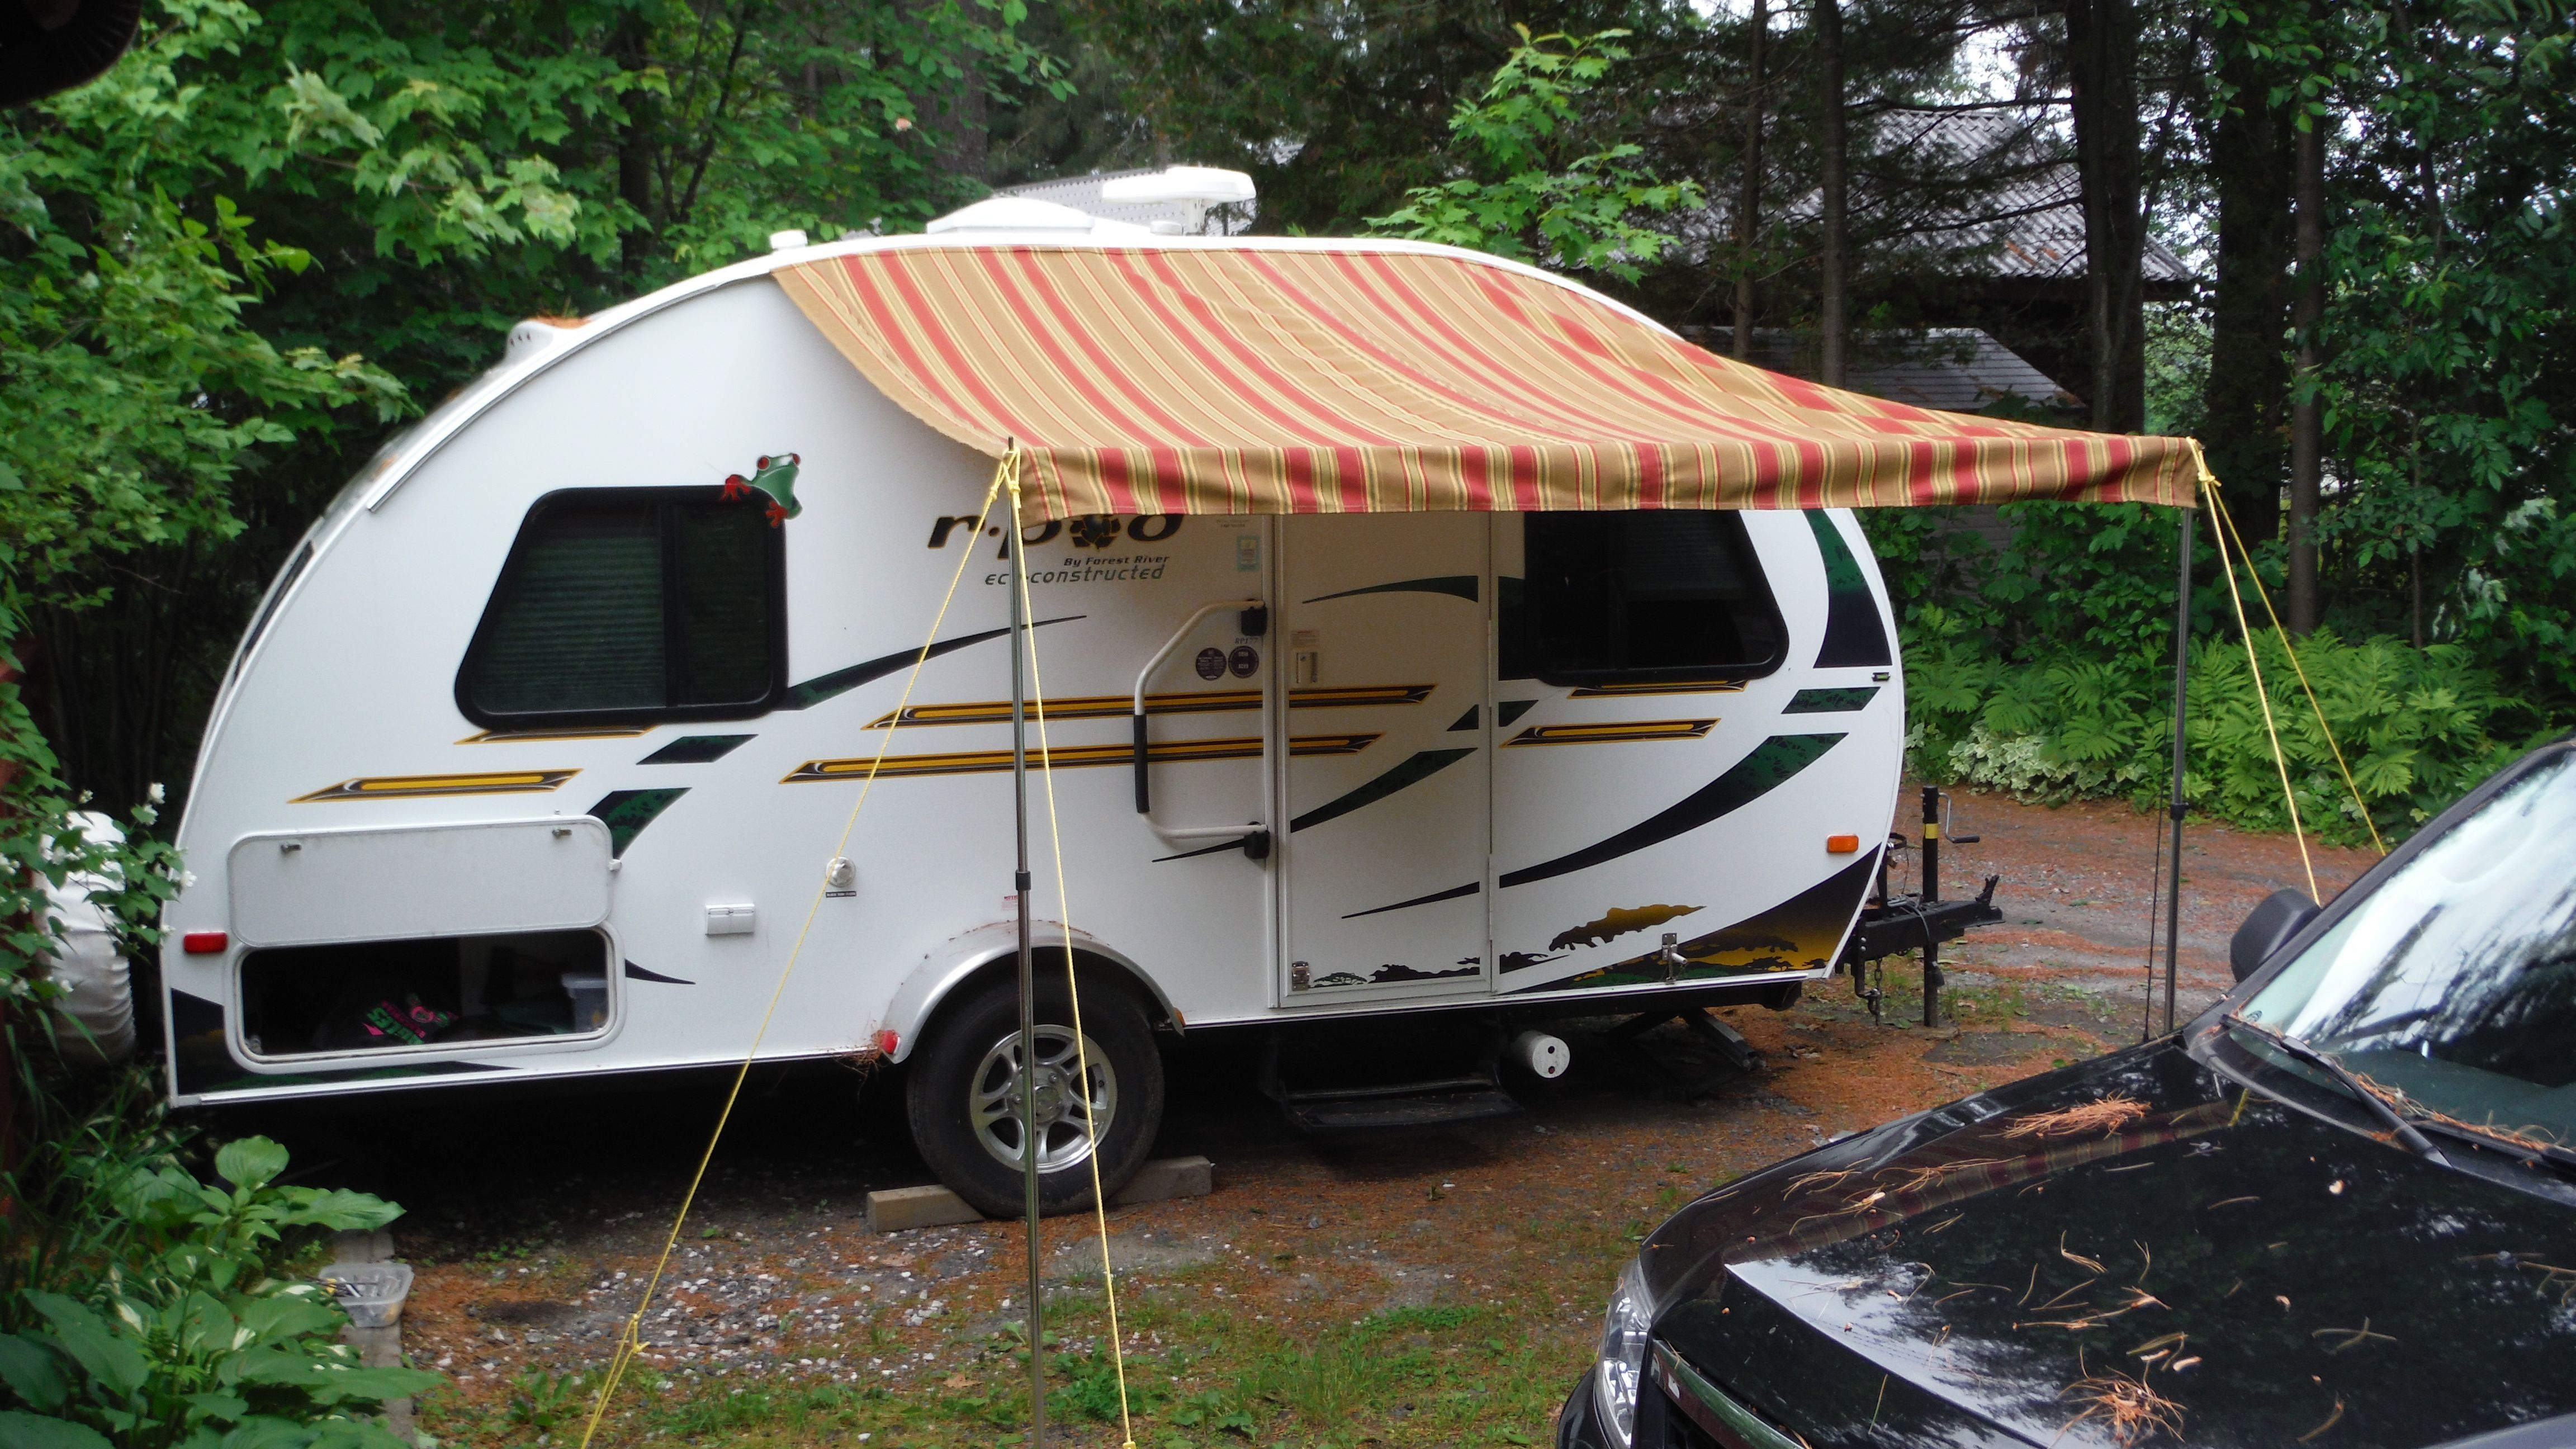 30 Pretty Image Of Camper Canopy Ideas Camper And Travel Penitifashion Rv Campers Camper Camper Awnings